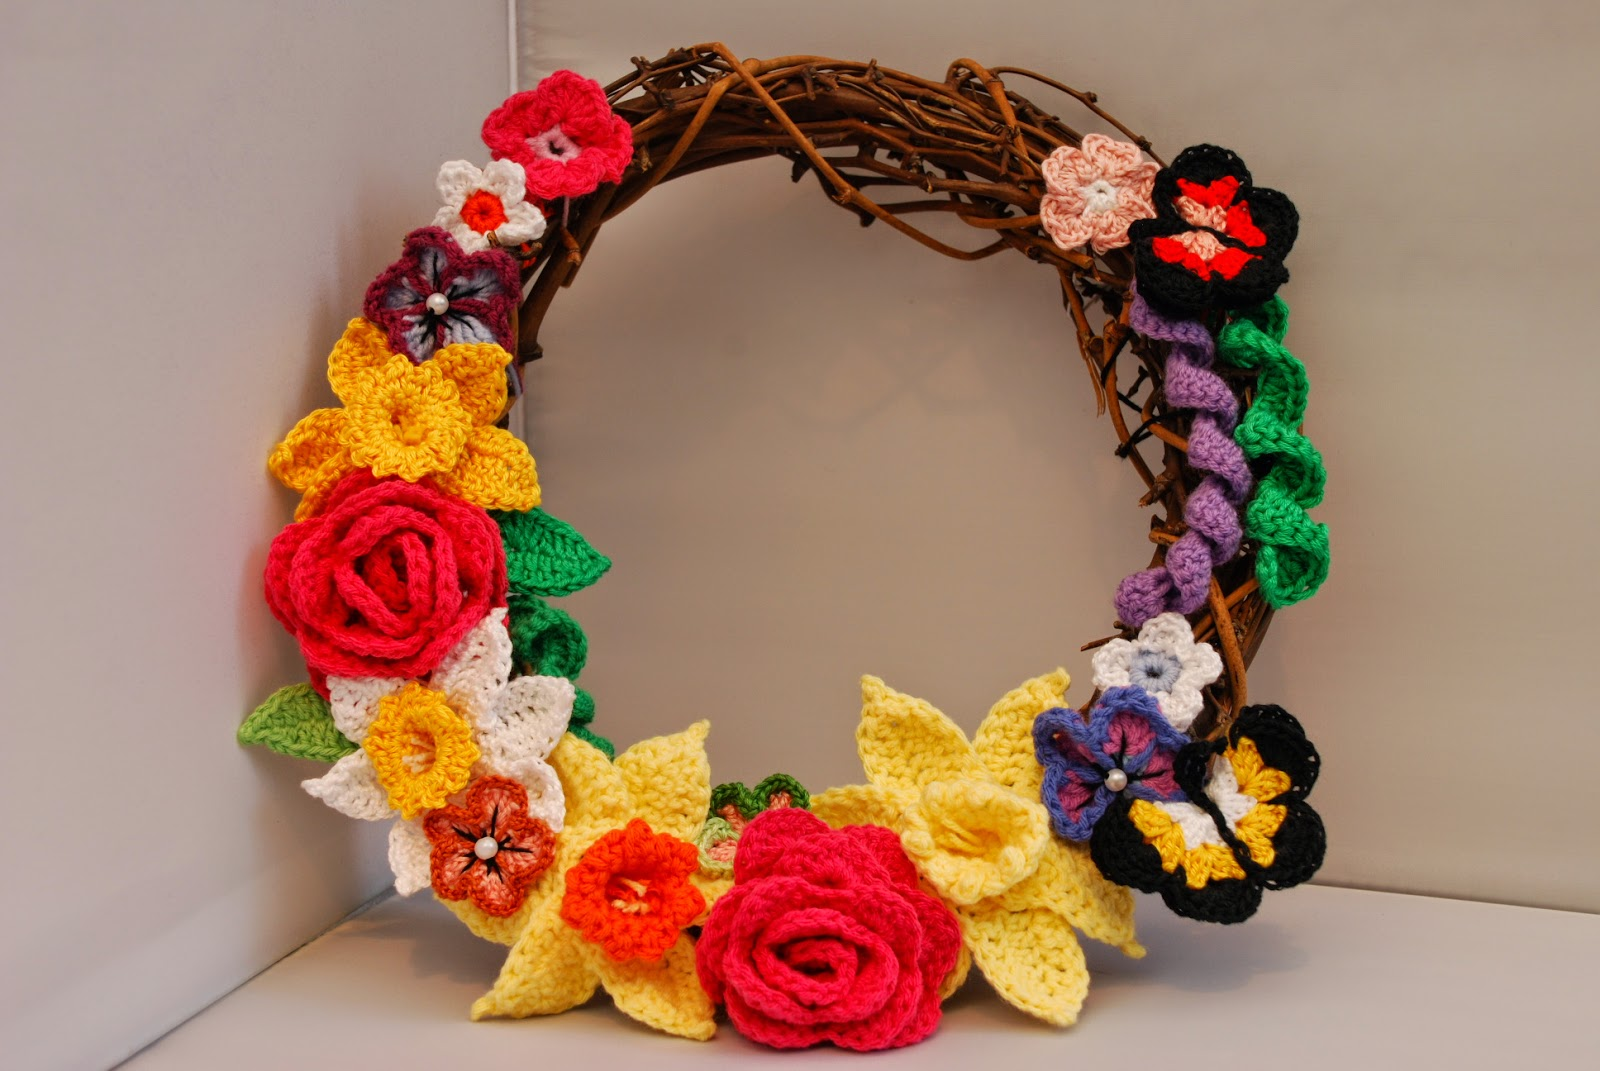 image of crochet Spring wreath